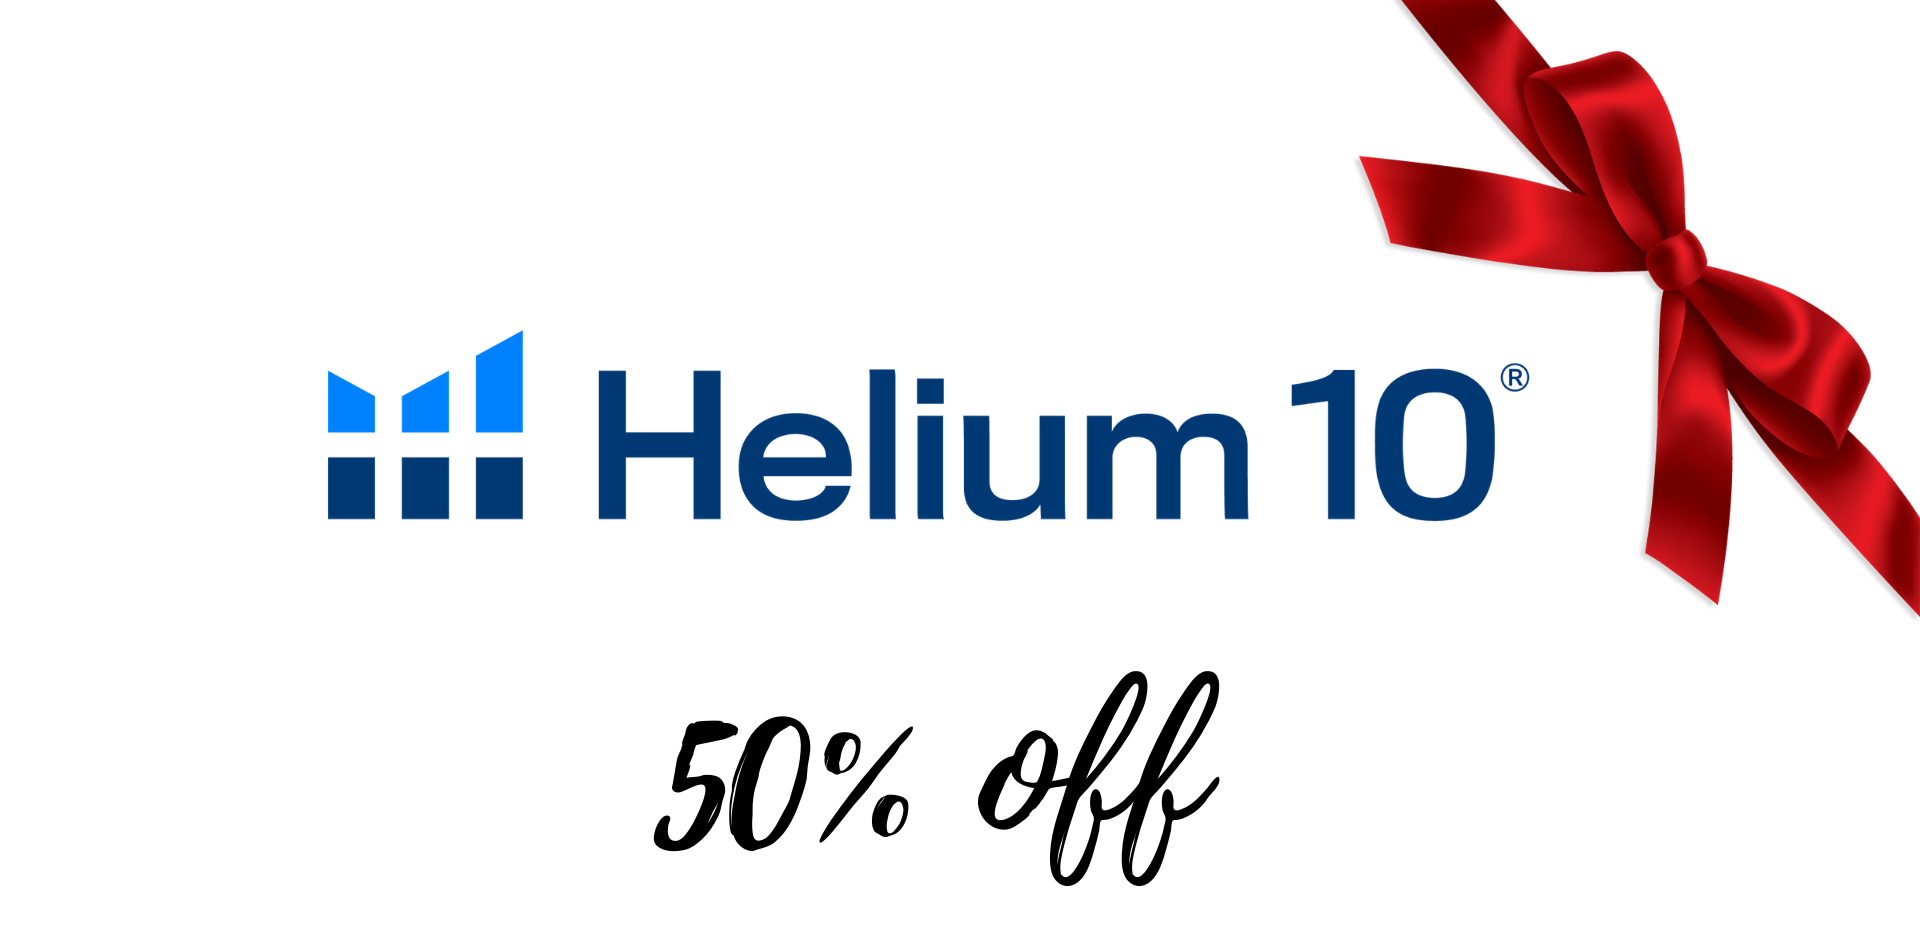 What Is Helium 10 Chrome Extension